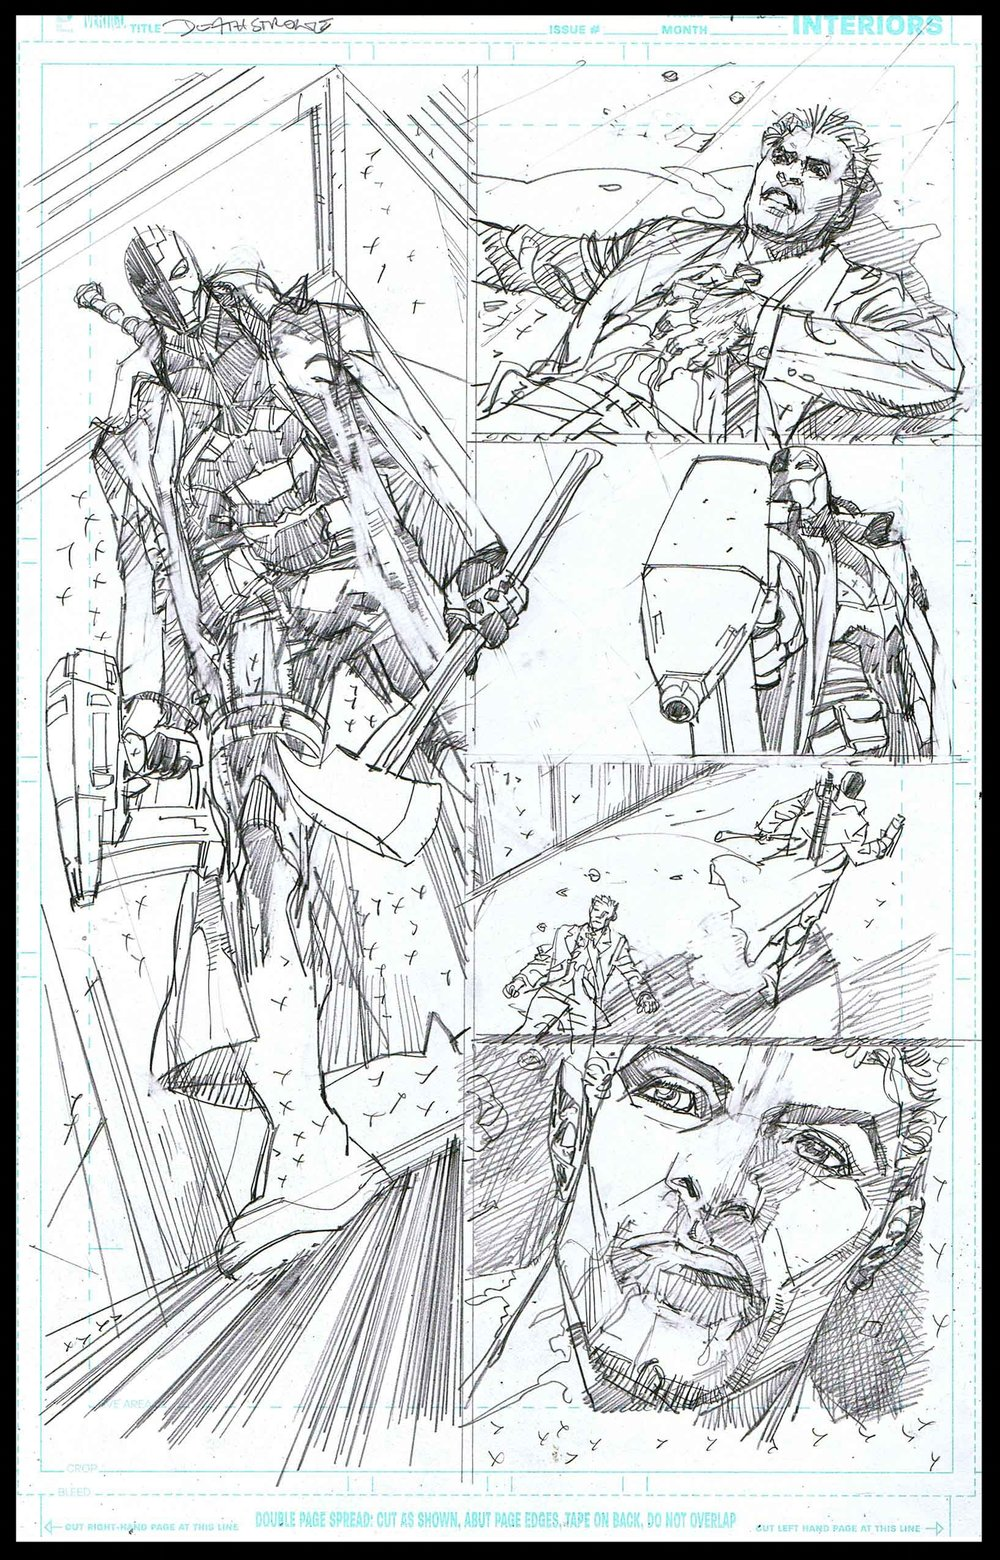 Deathstroke #11 - Page 14 - Pencils